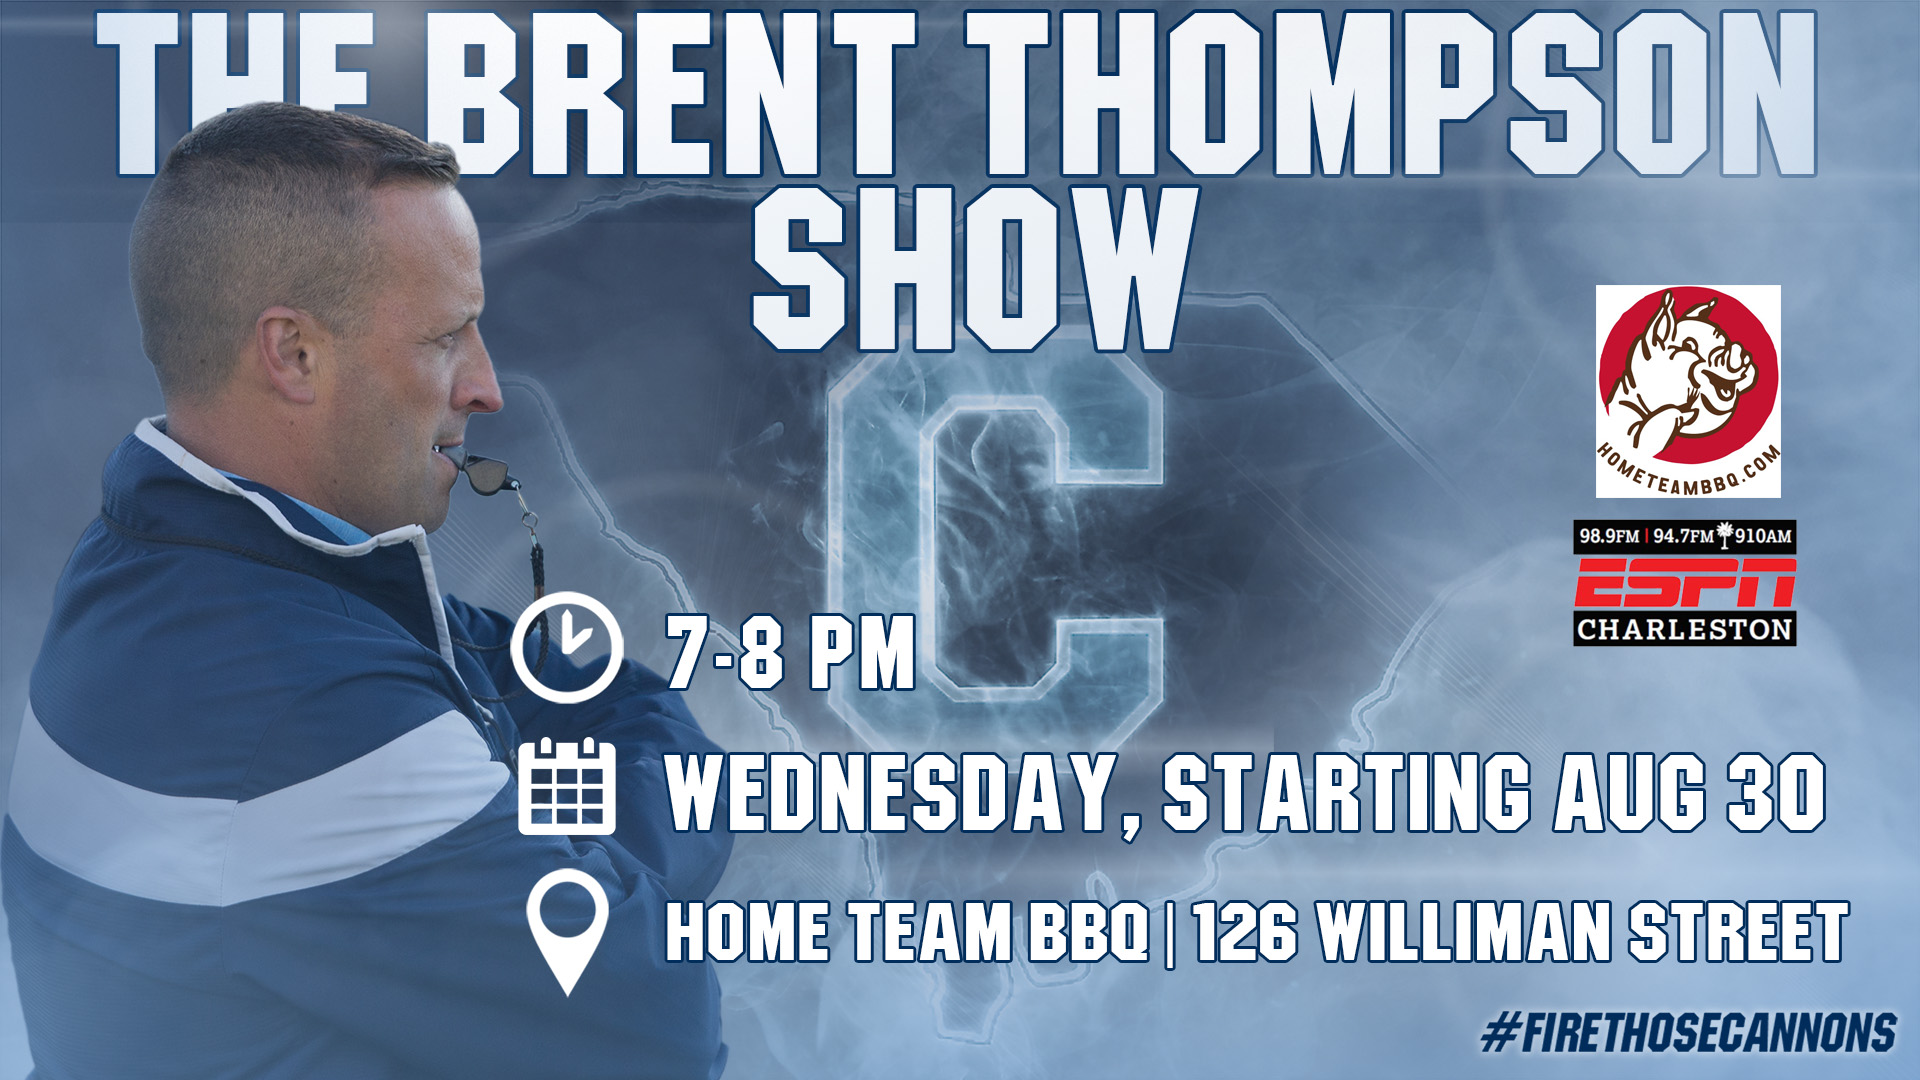 Show Debuts on Wed Night at Home Team BBQ Downtown